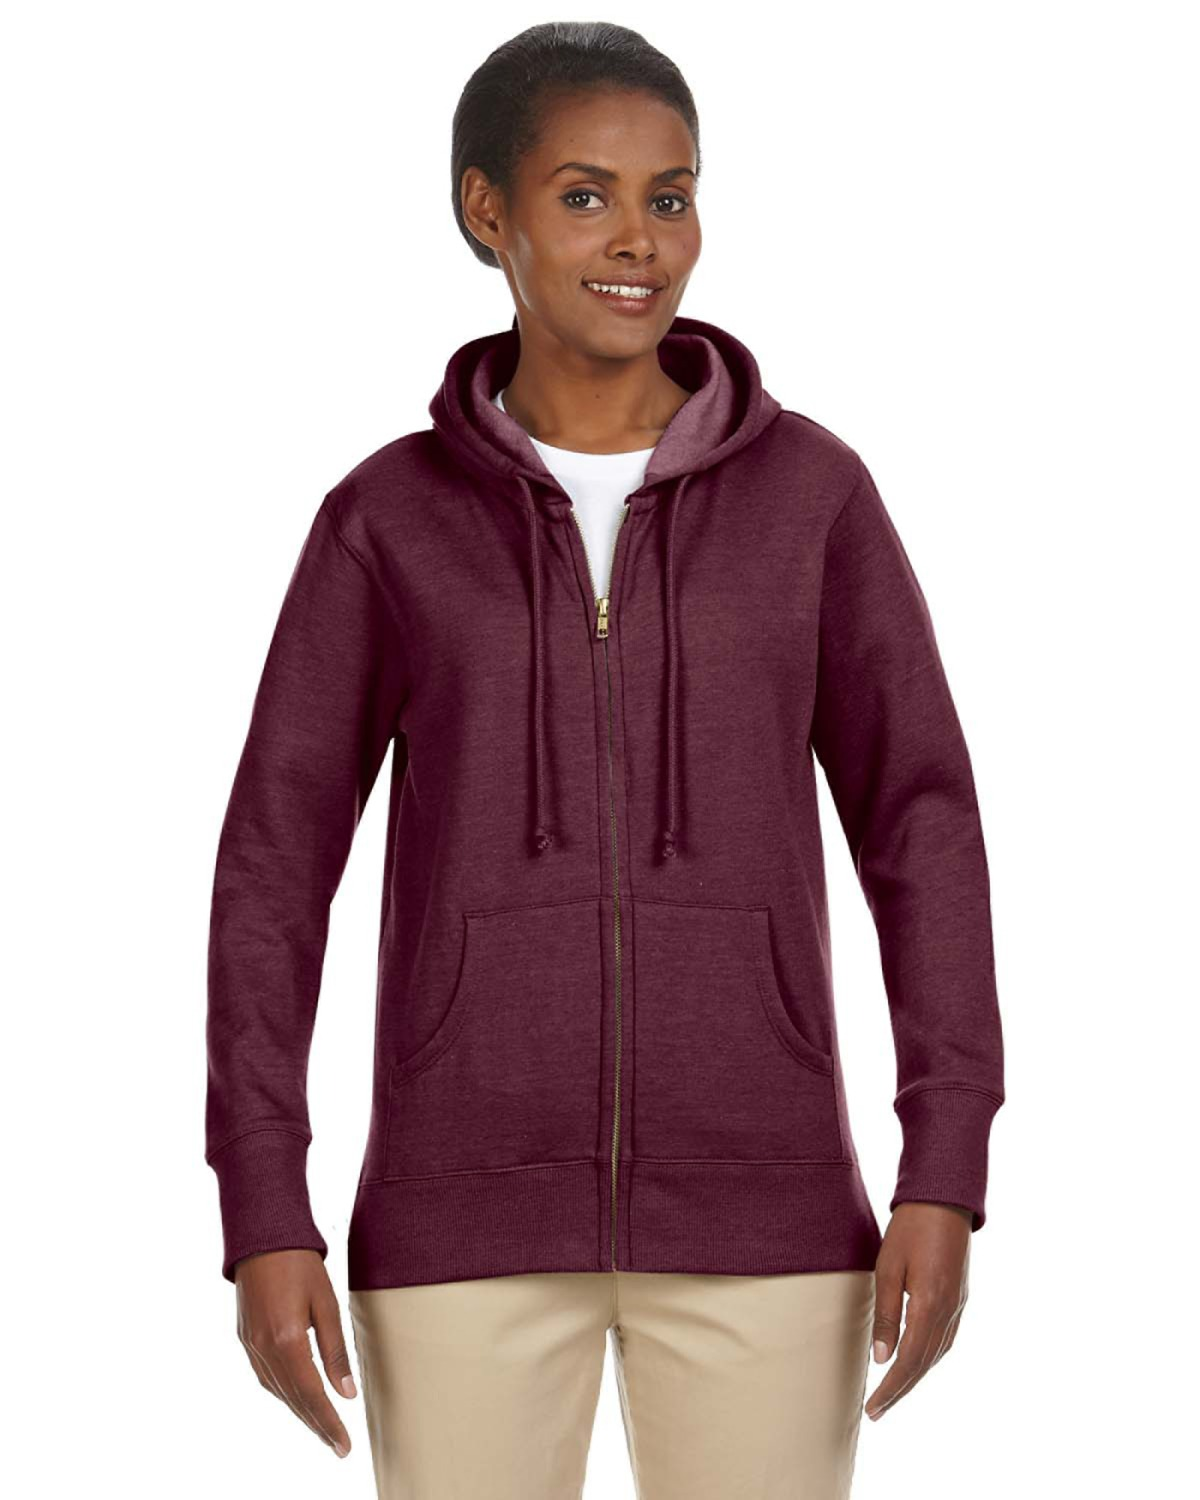 Econscious EC4580 - 7 oz. Organic/Recycled Heathered Fleece Full-Zip Hood